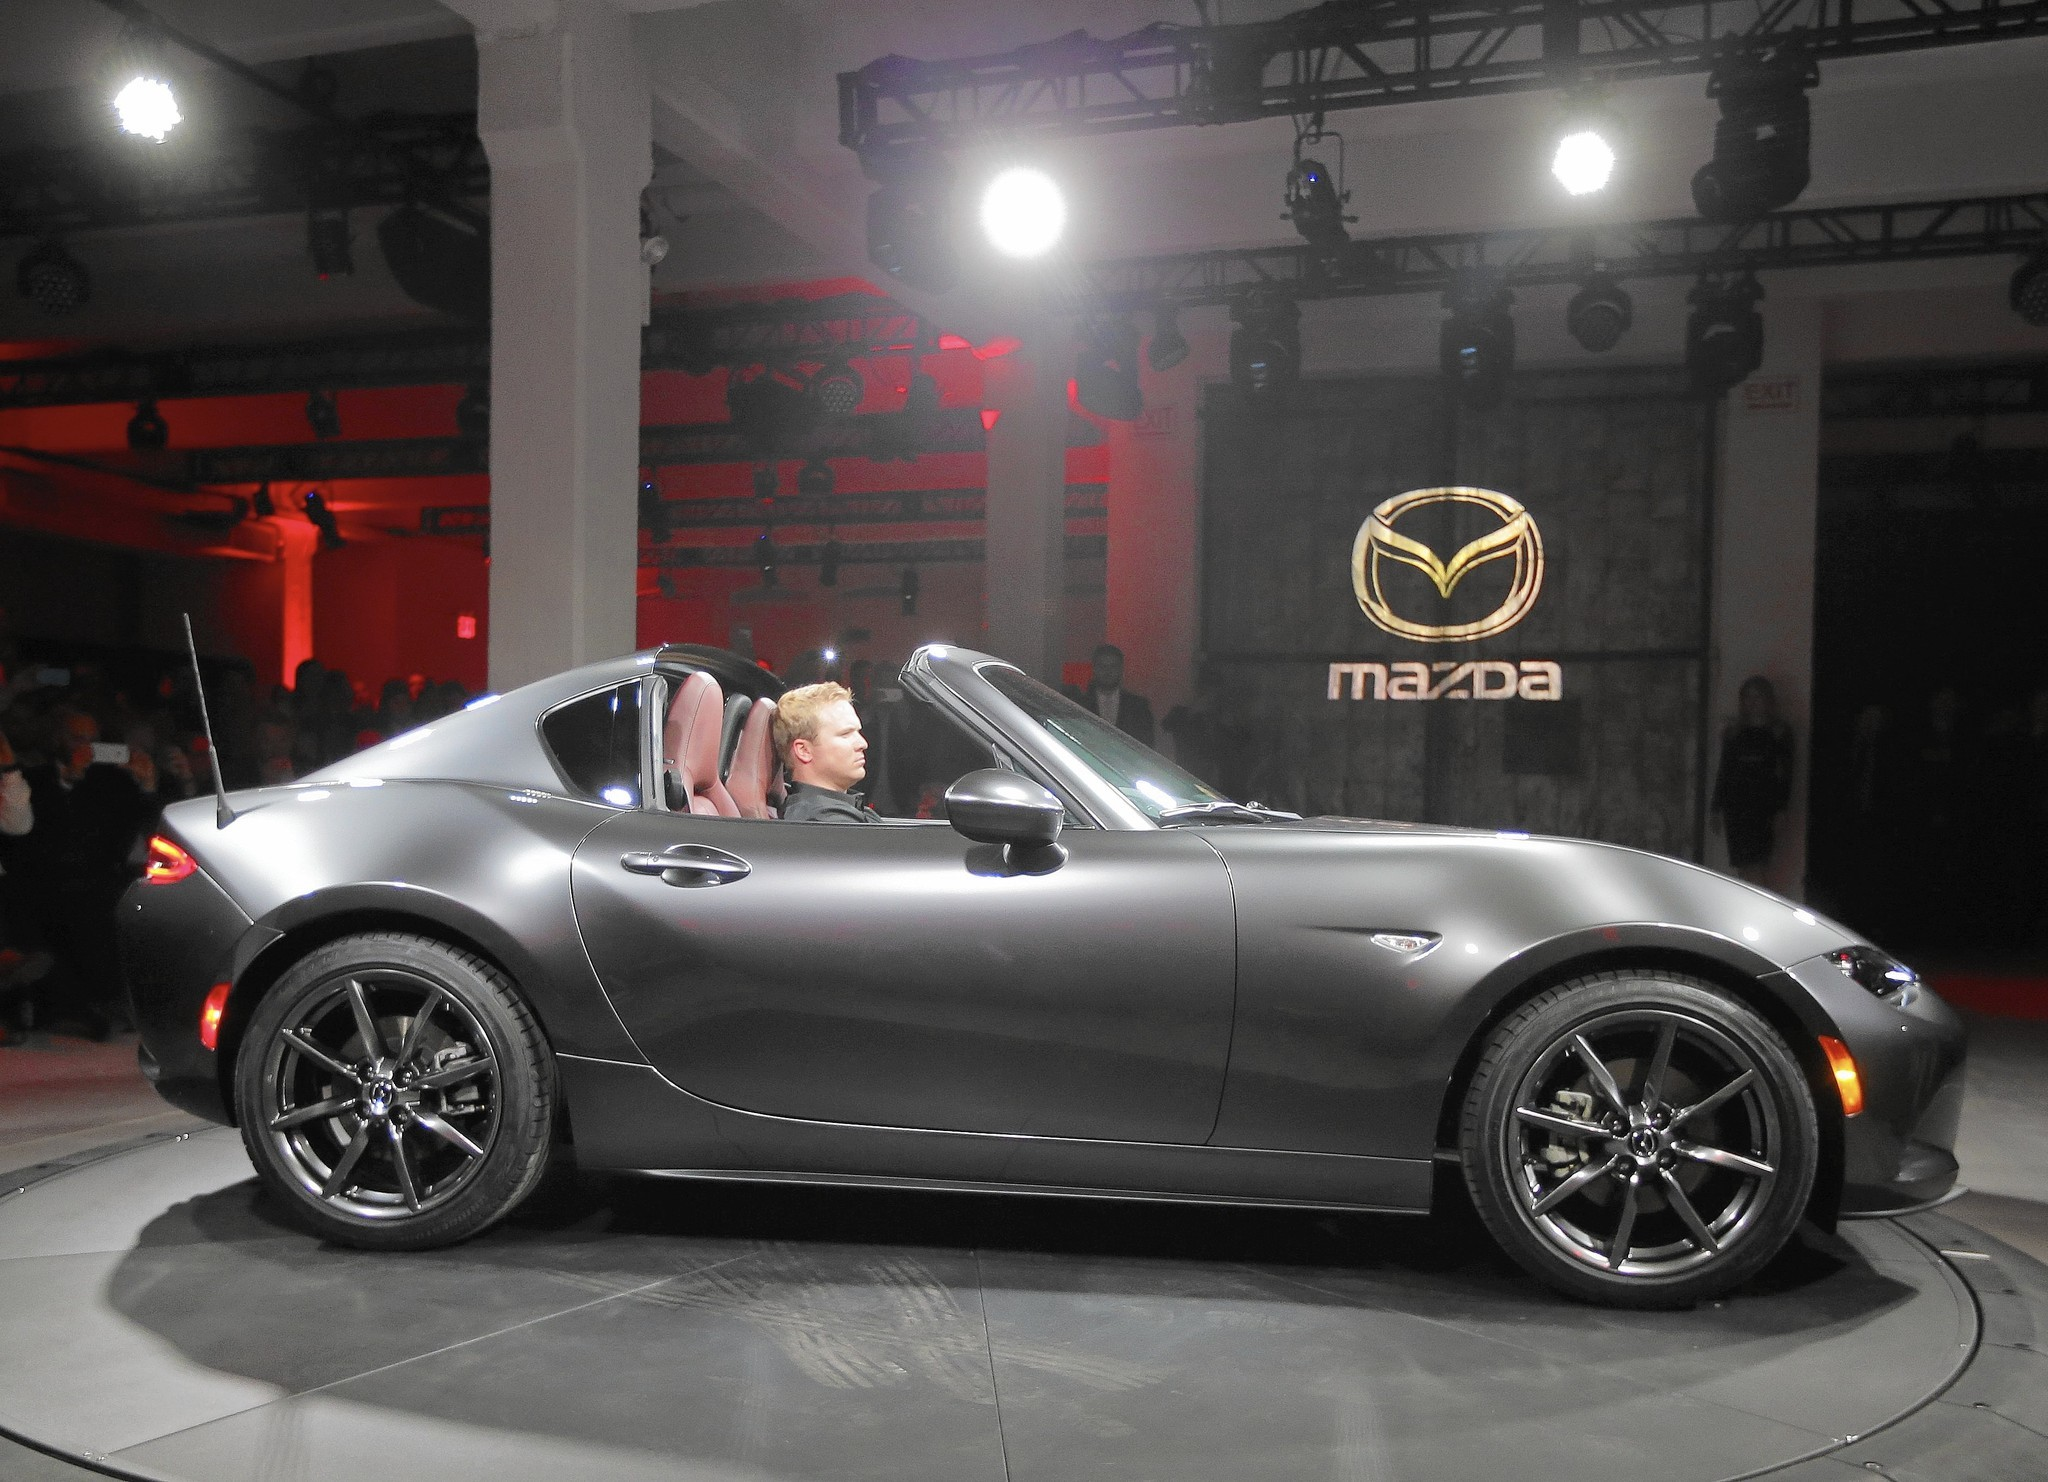 Image Result For Mazda New York Auto Show